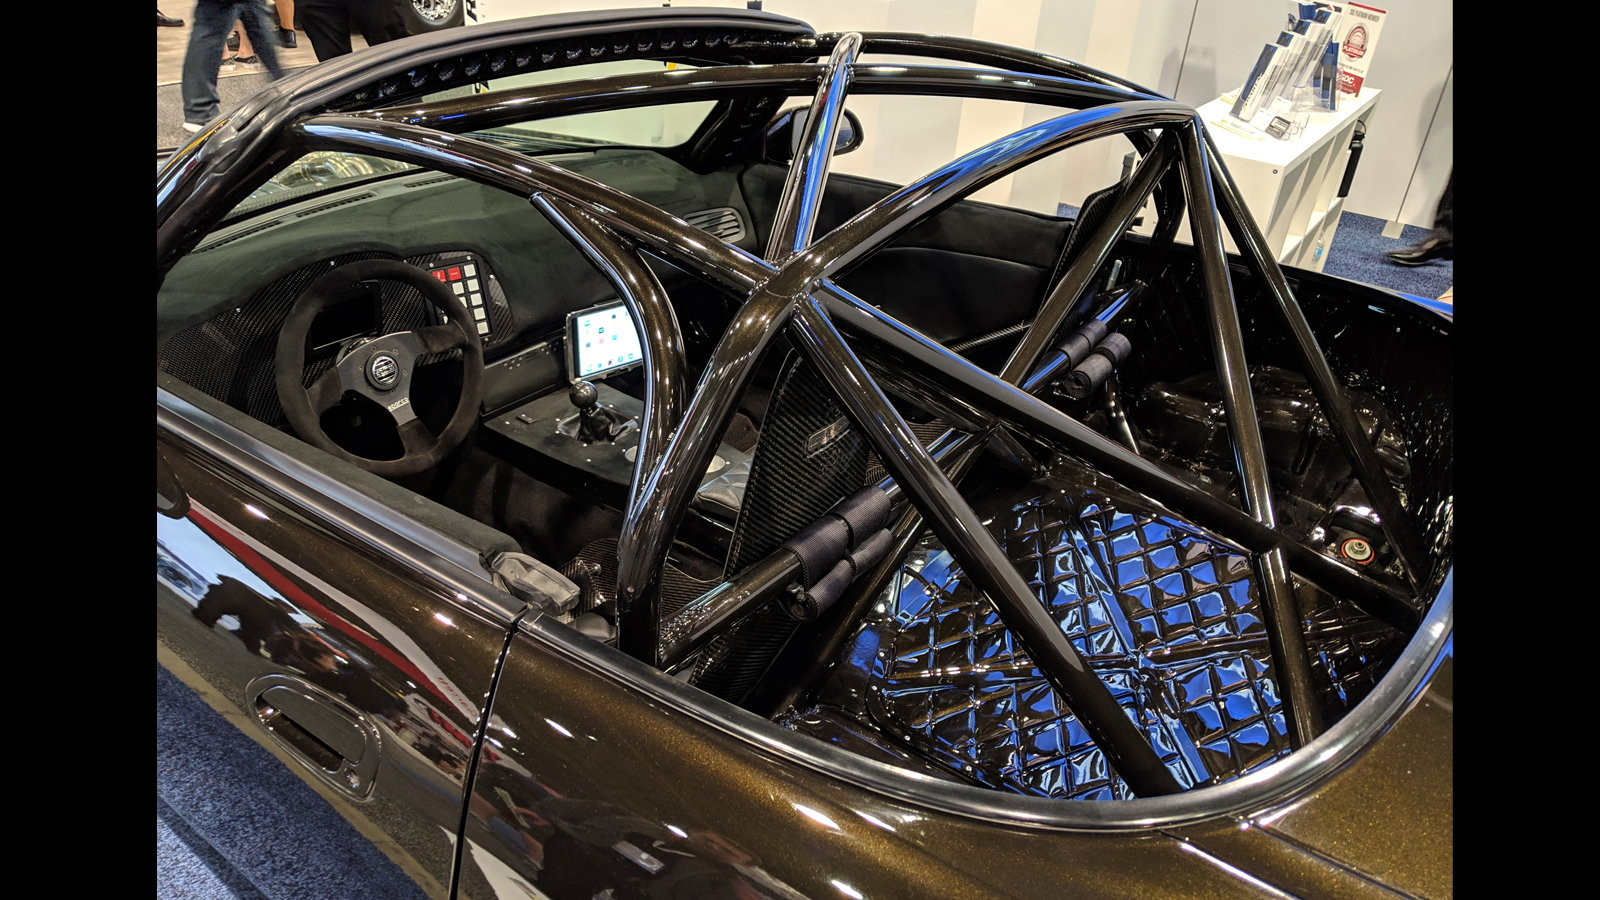 Live from SEMA: This S2000 Brakes Under Pressure